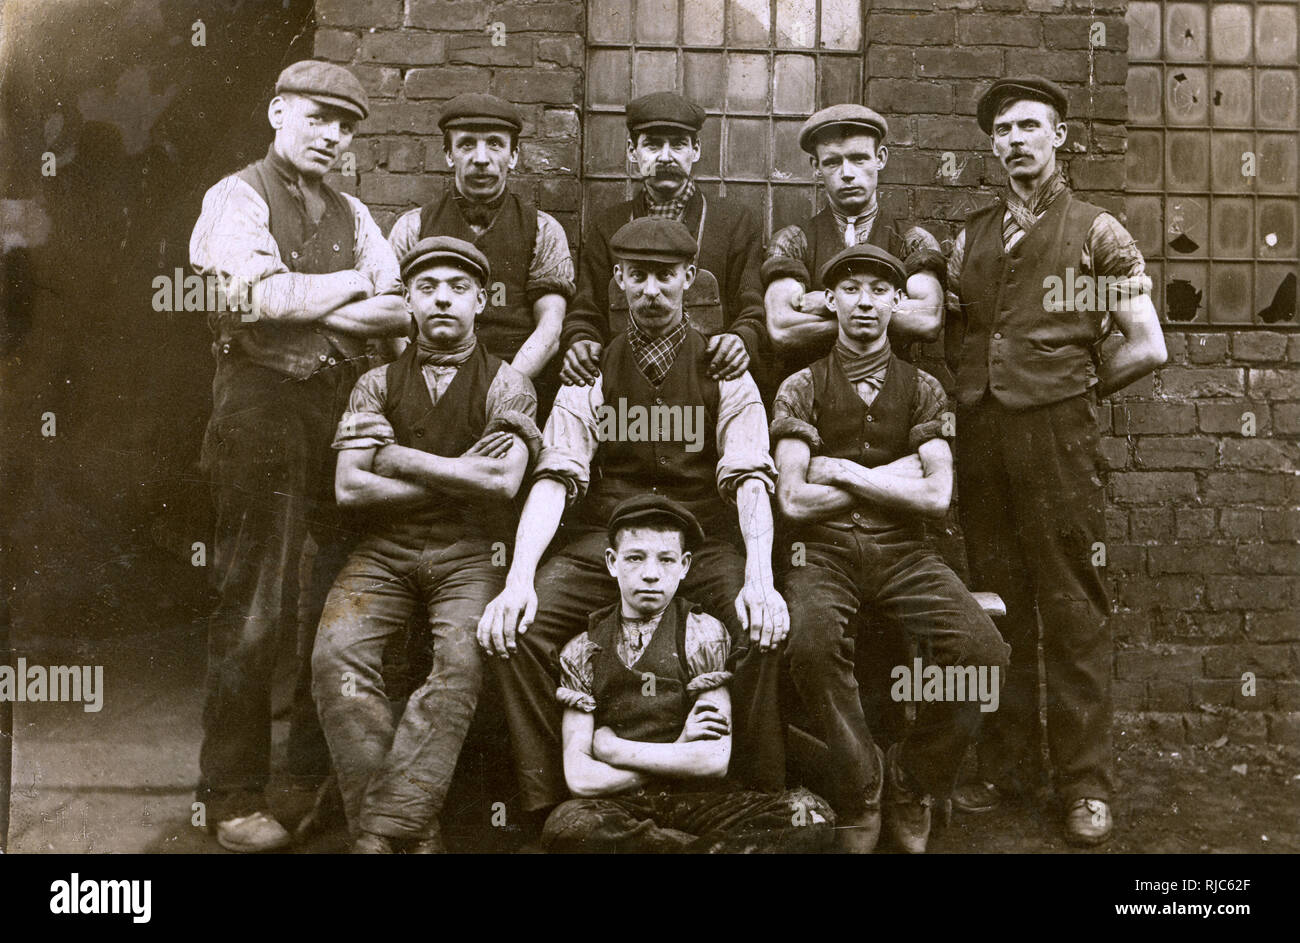 Lancashire engineering factory workers including a very young apprentice (front centre). Stock Photo